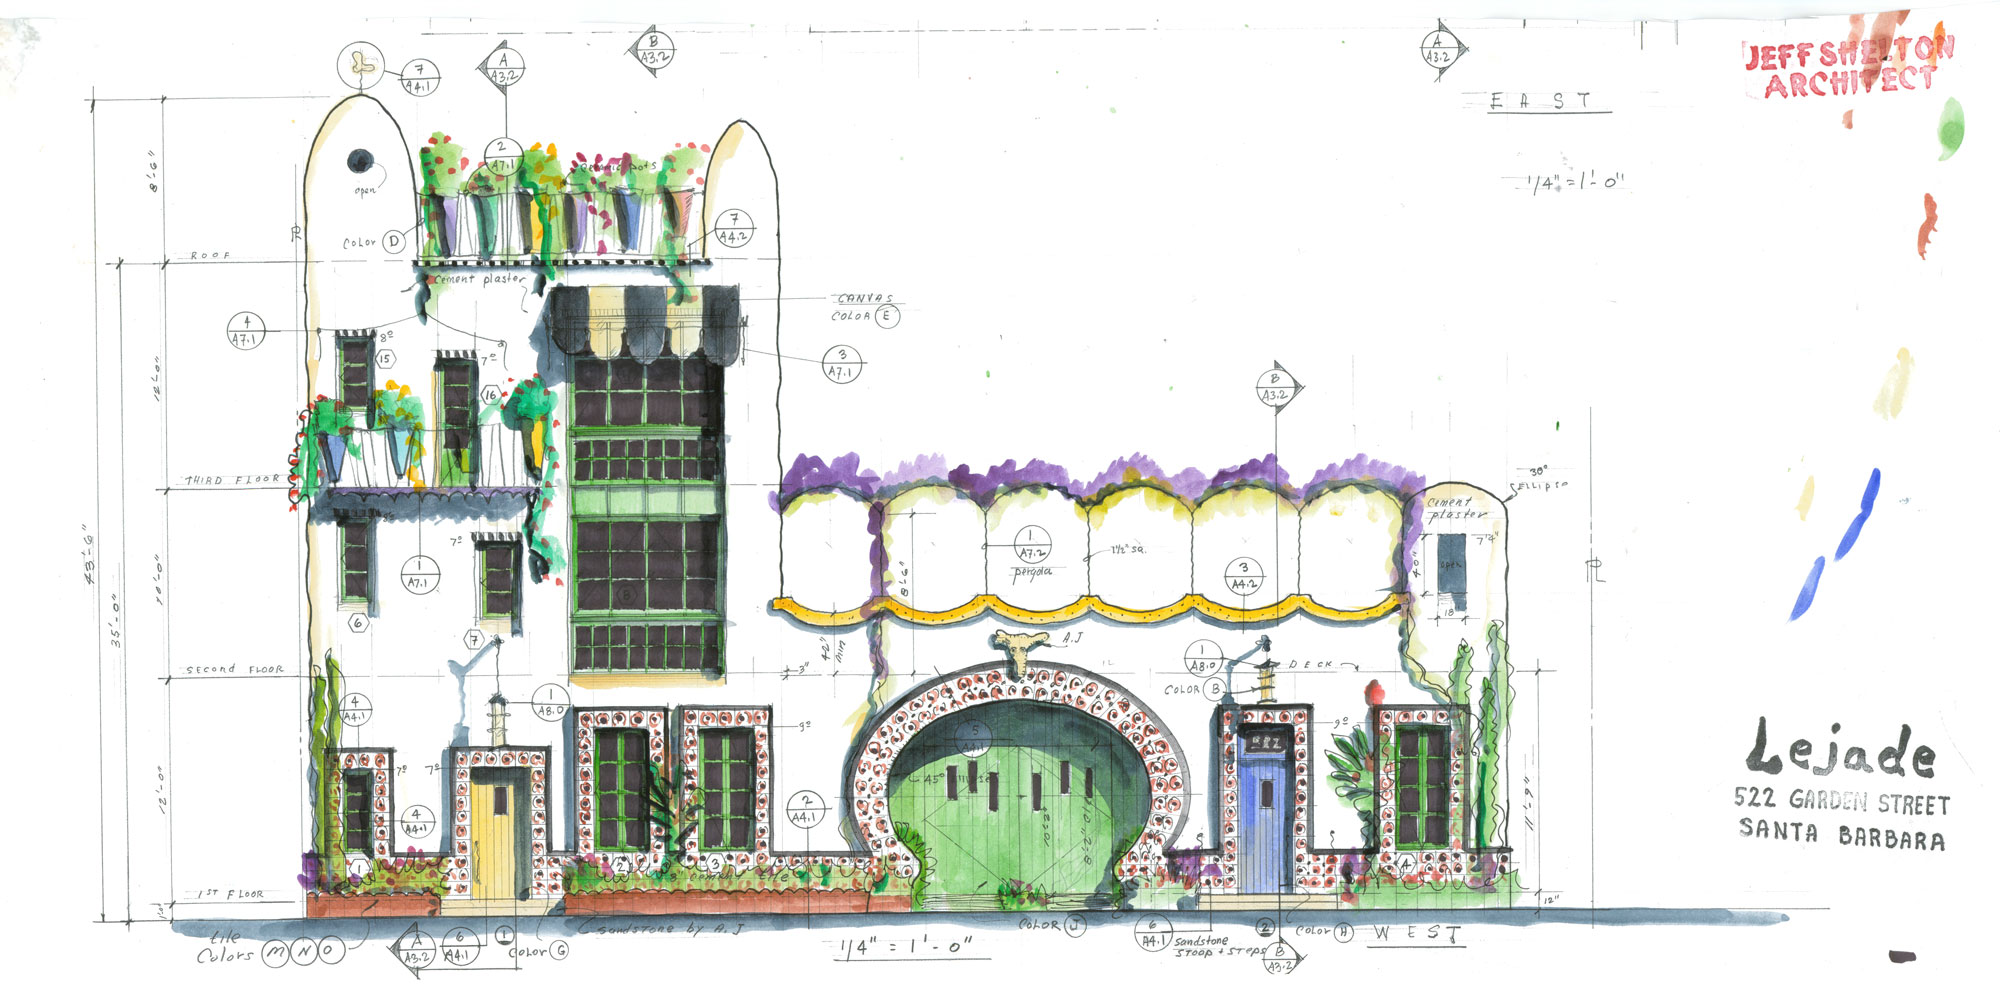 04.08.14-Scanned-Elevation.jpg